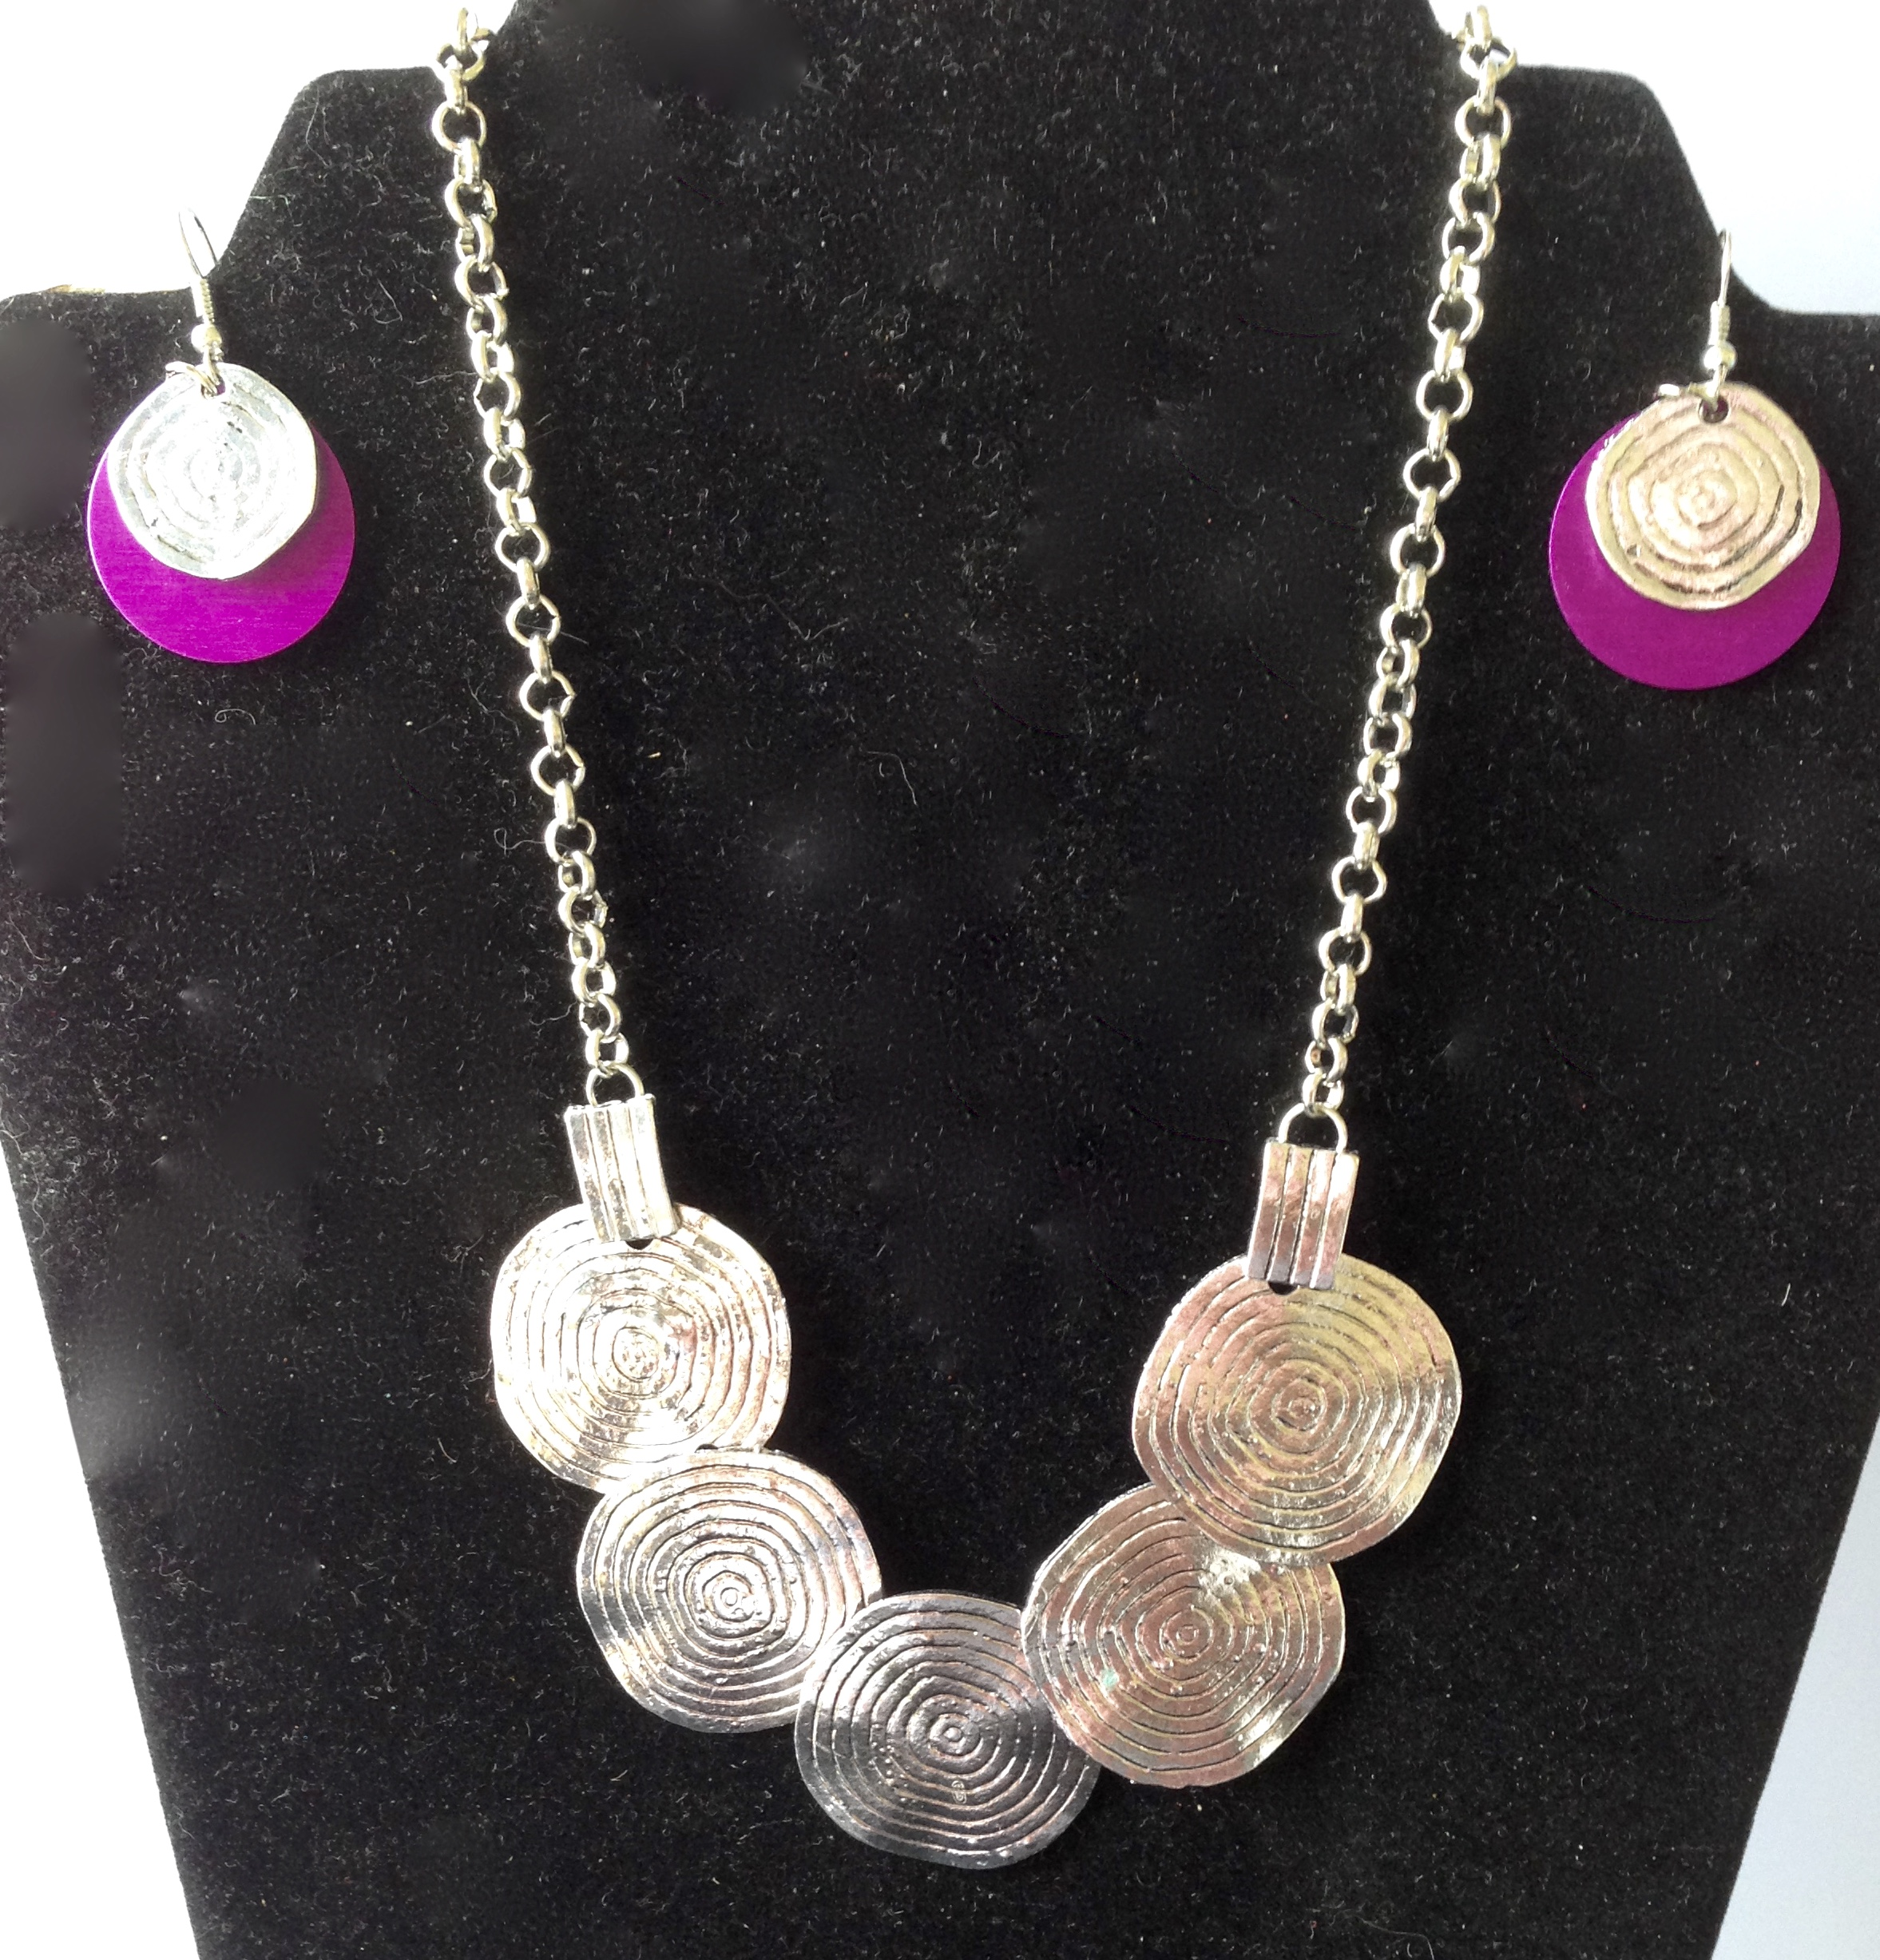 SALE:Silver Disks Necklace and Earrings Set